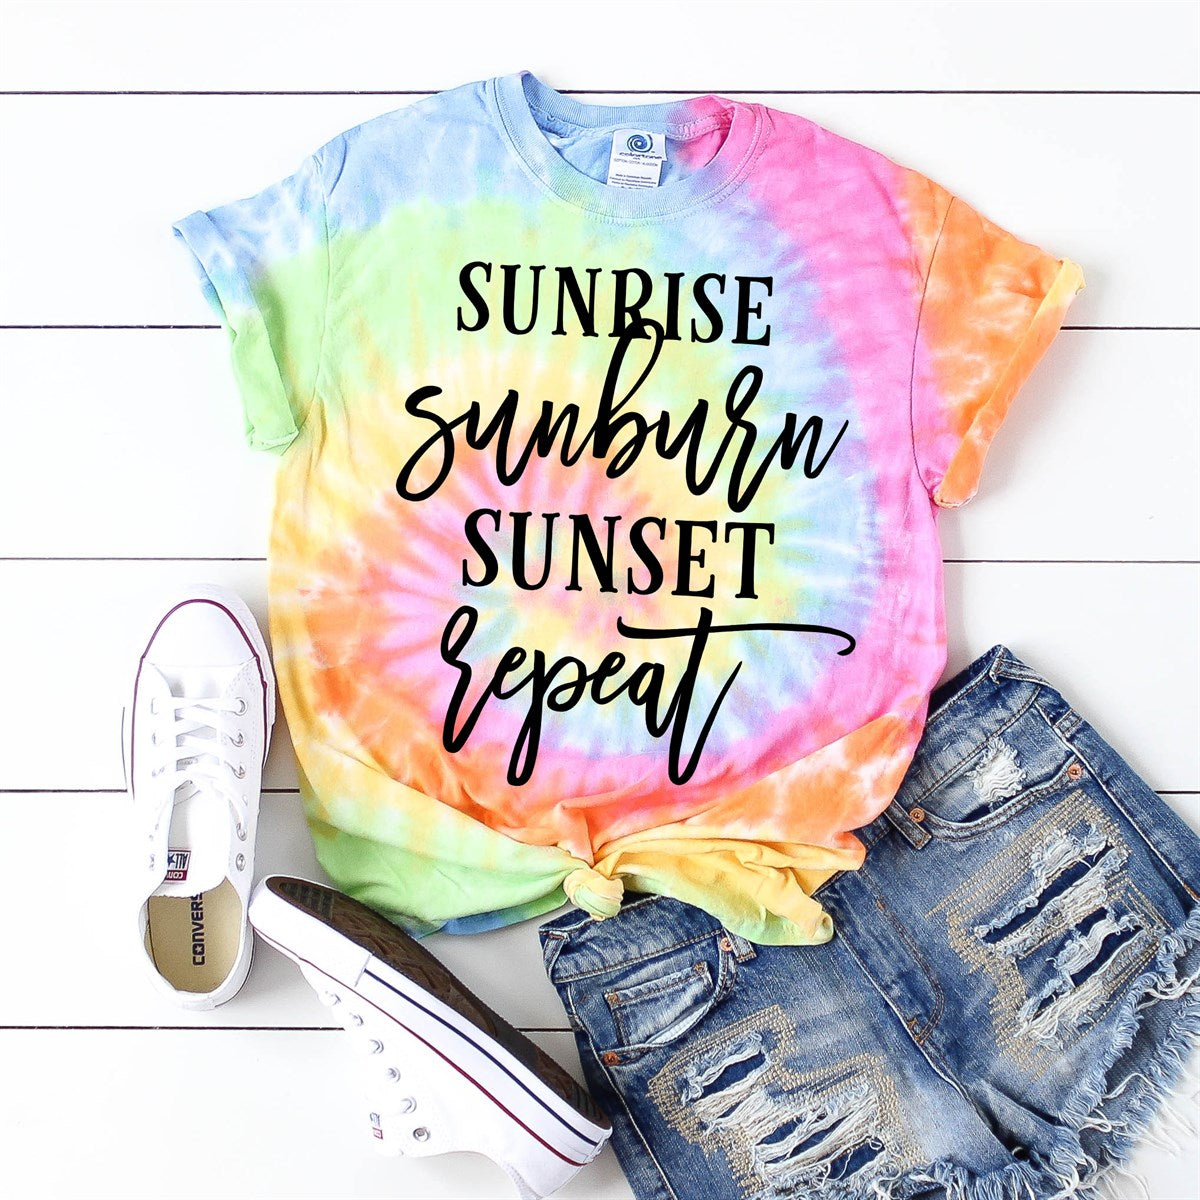 Sunrise Sunburn Sunset Tie Dye Tee